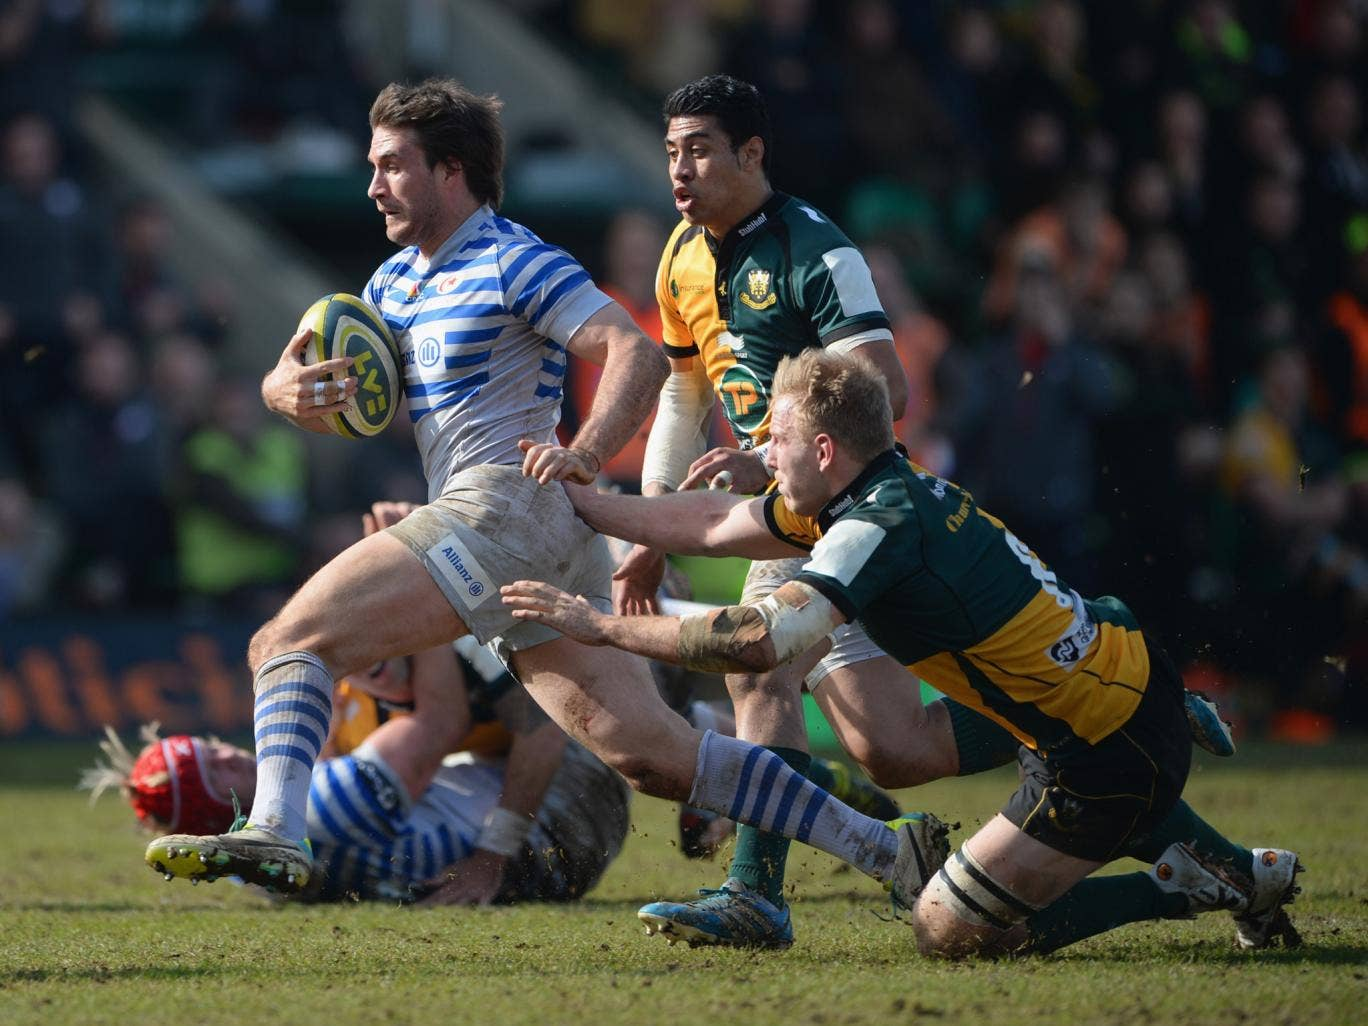 Marcelo Bosch saw a try ruled out just before half-time in Saracens' defeat to Northampton Saints